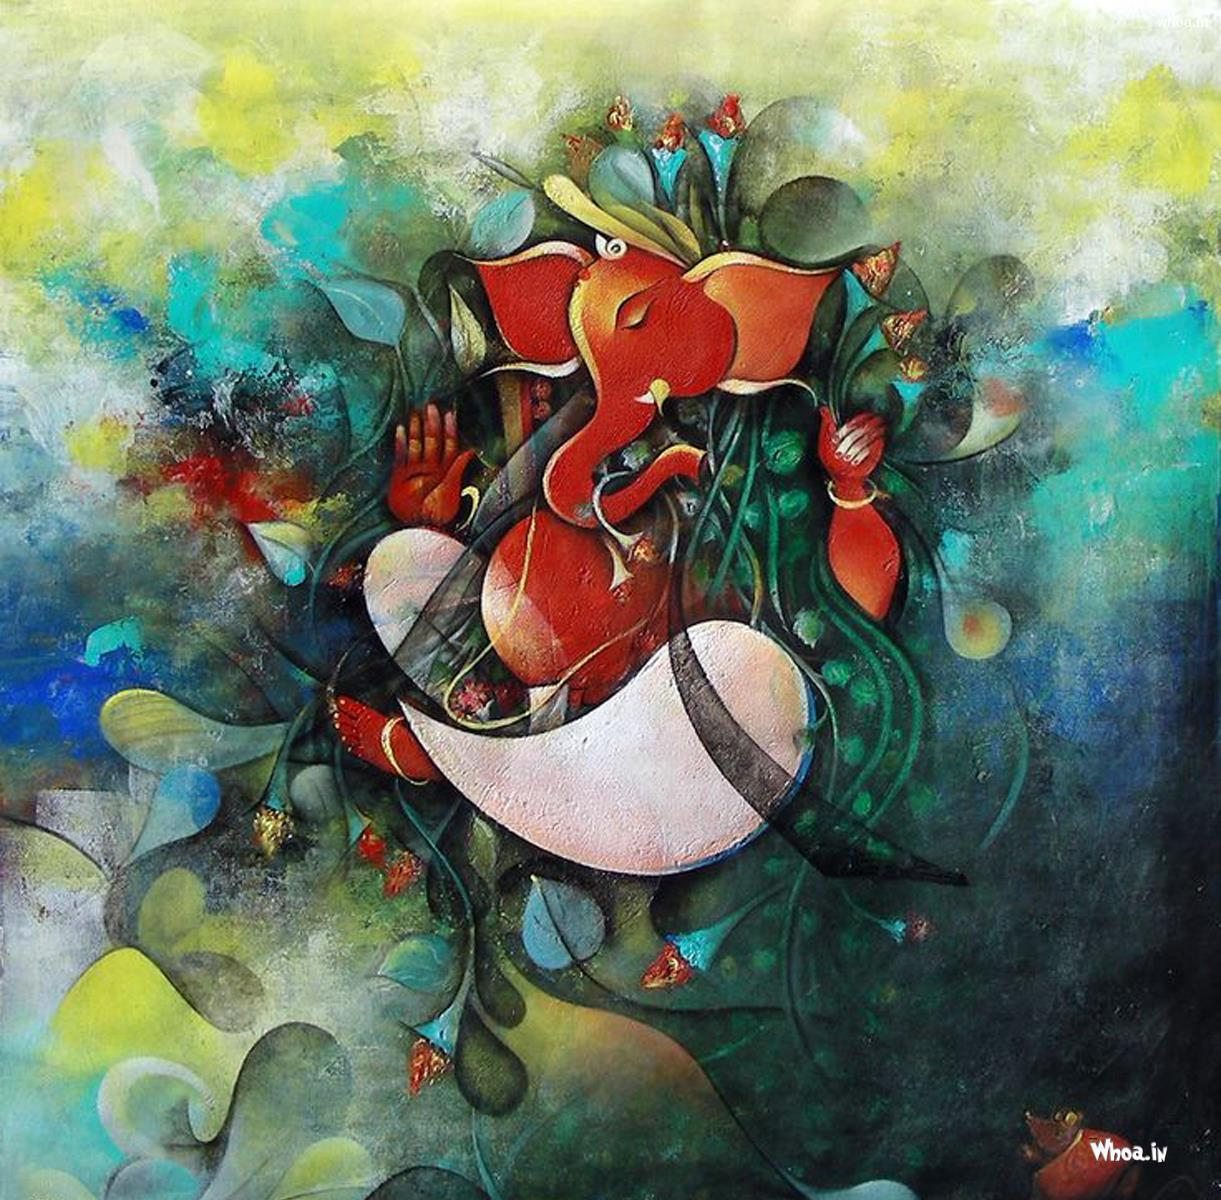 Lord ganesha multi color painting hd image share this page wow 706 download